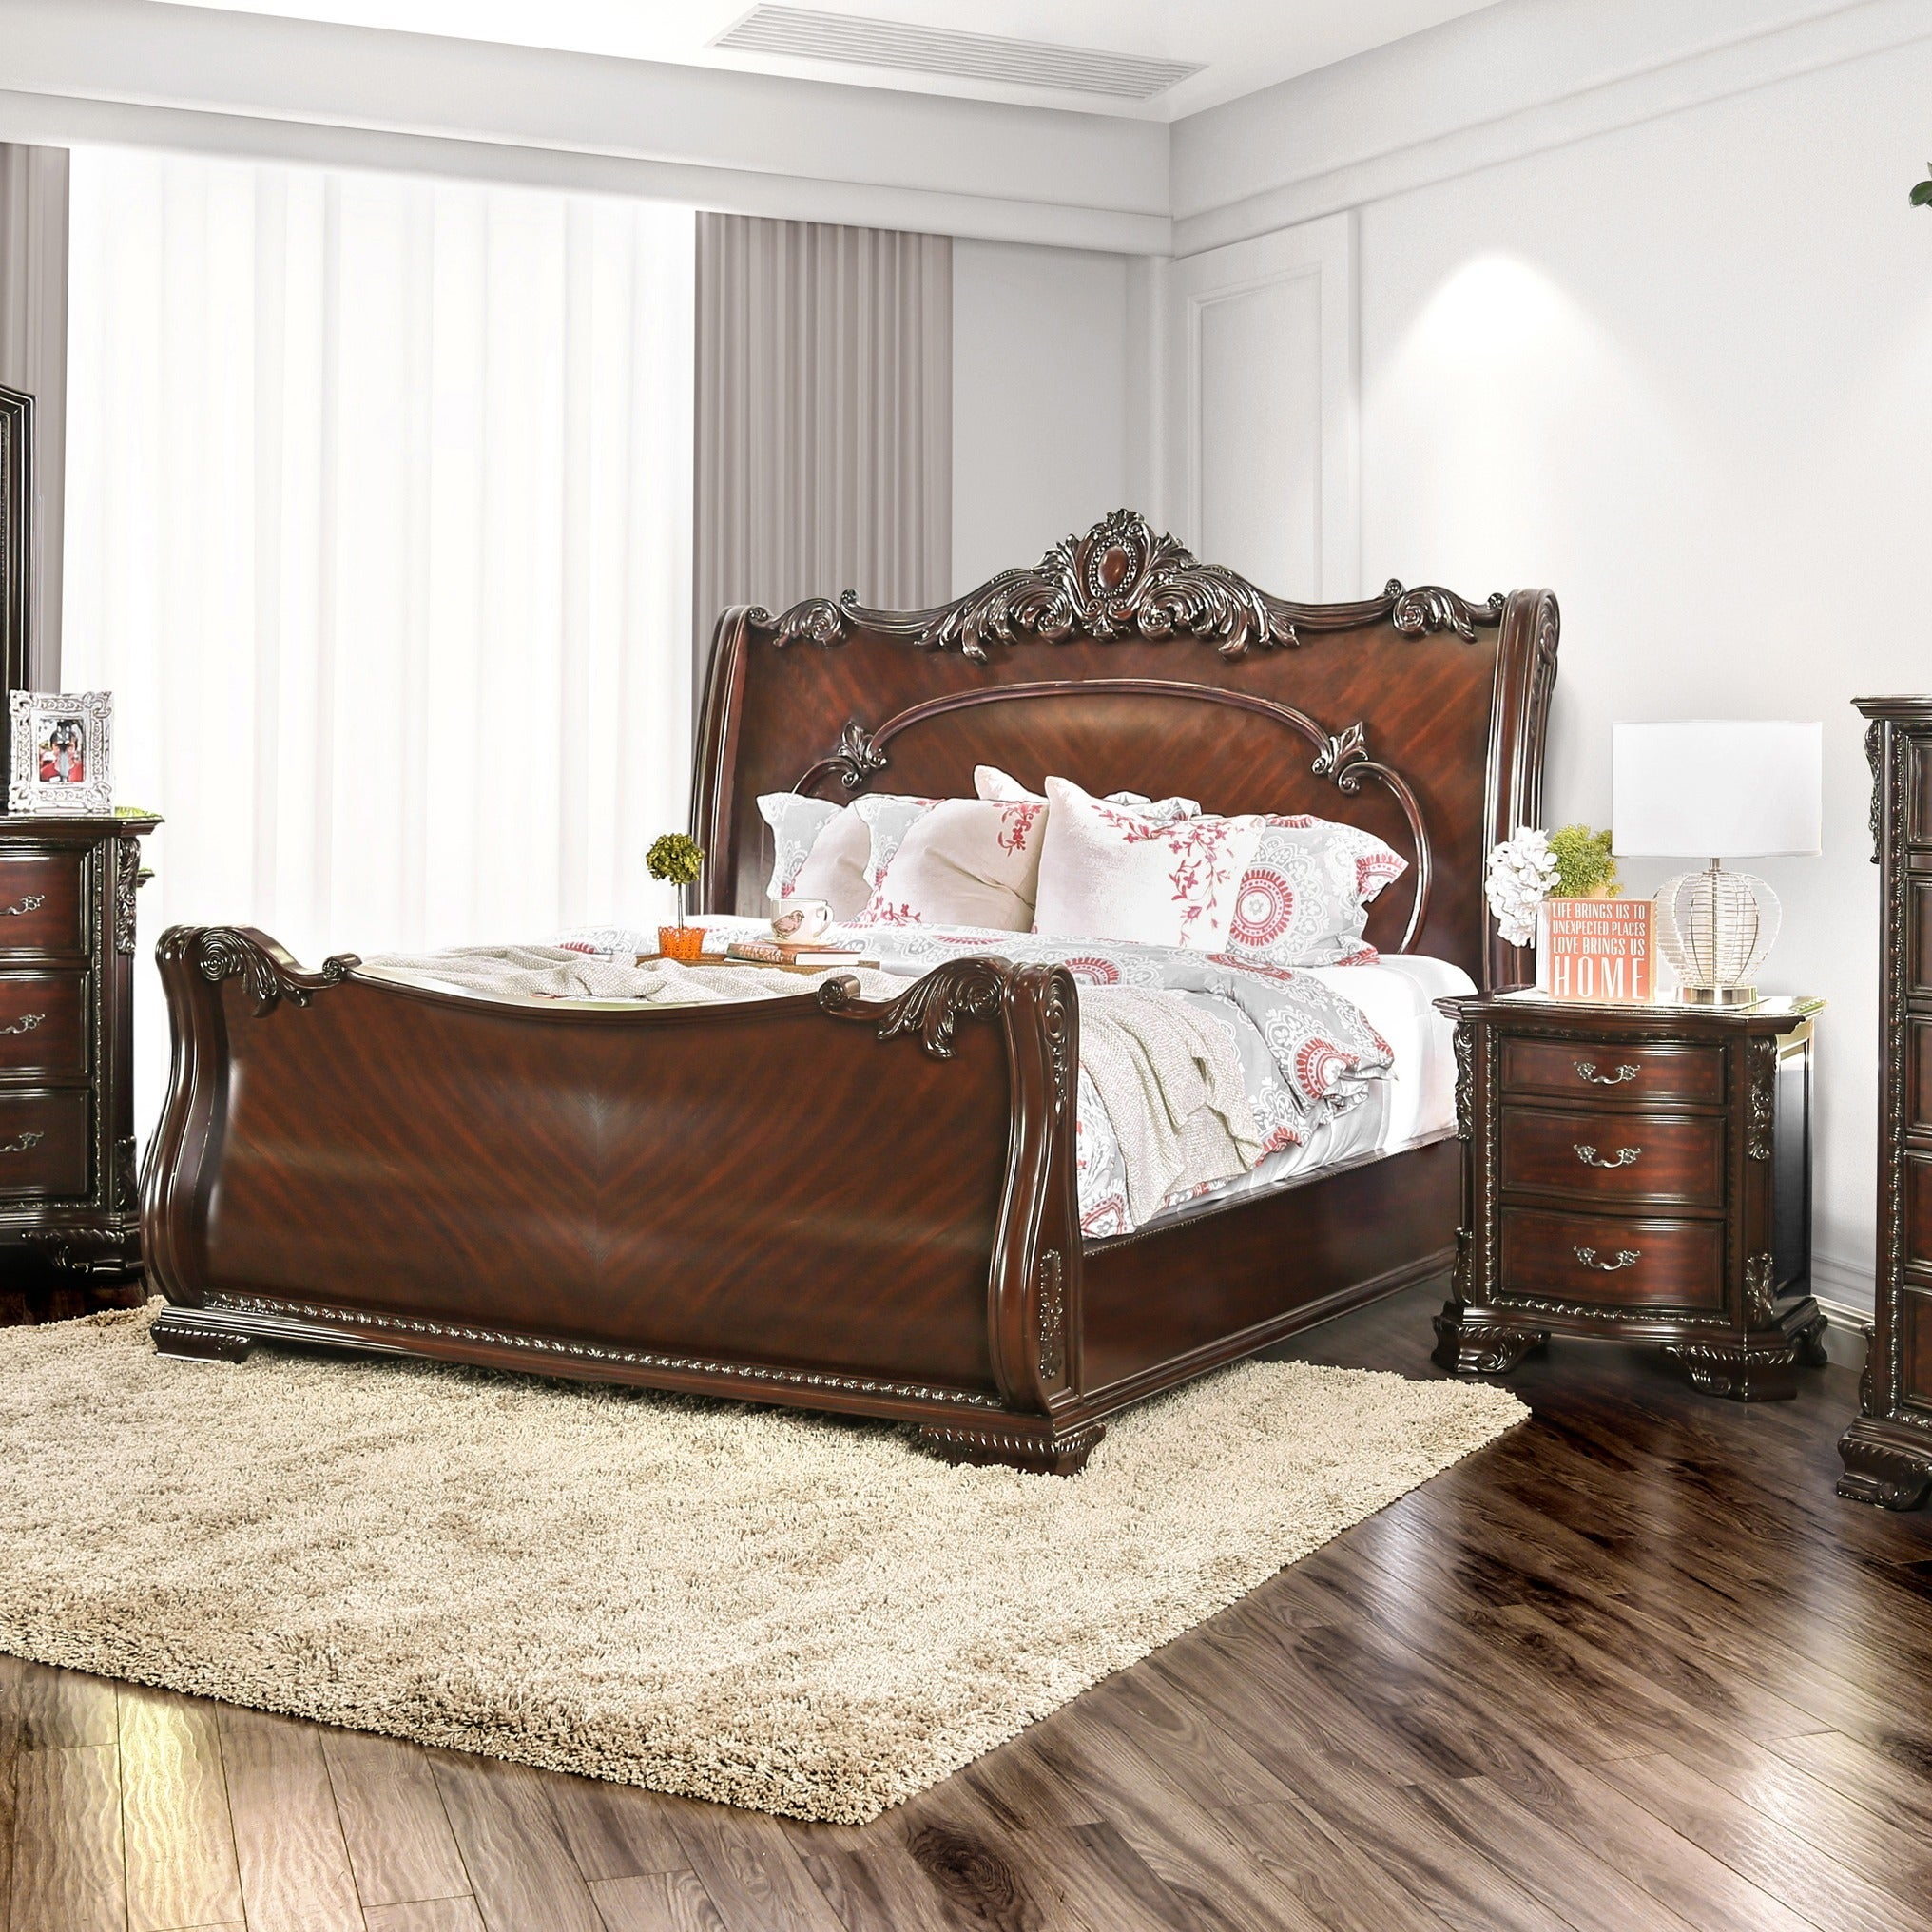 Shop Furniture Of America Kow Cherry Cal King 2 Piece Bedroom Set